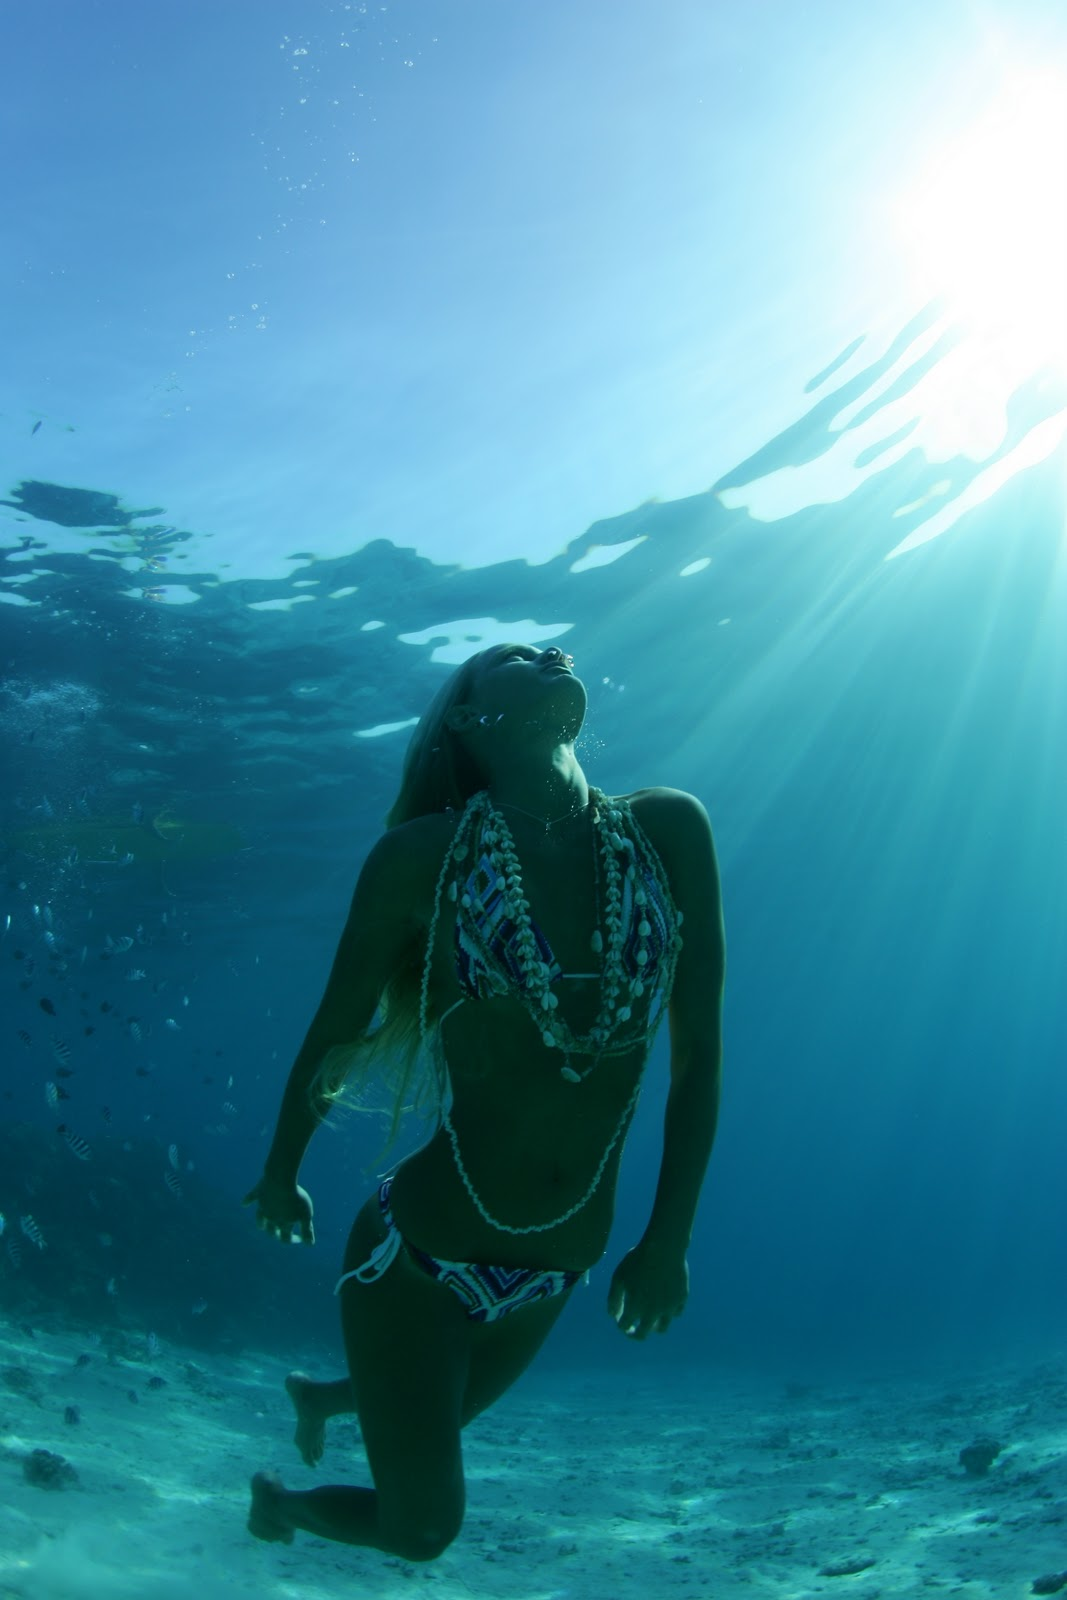 Woman Suspended Underwater High-Res Stock Photo - Getty Images